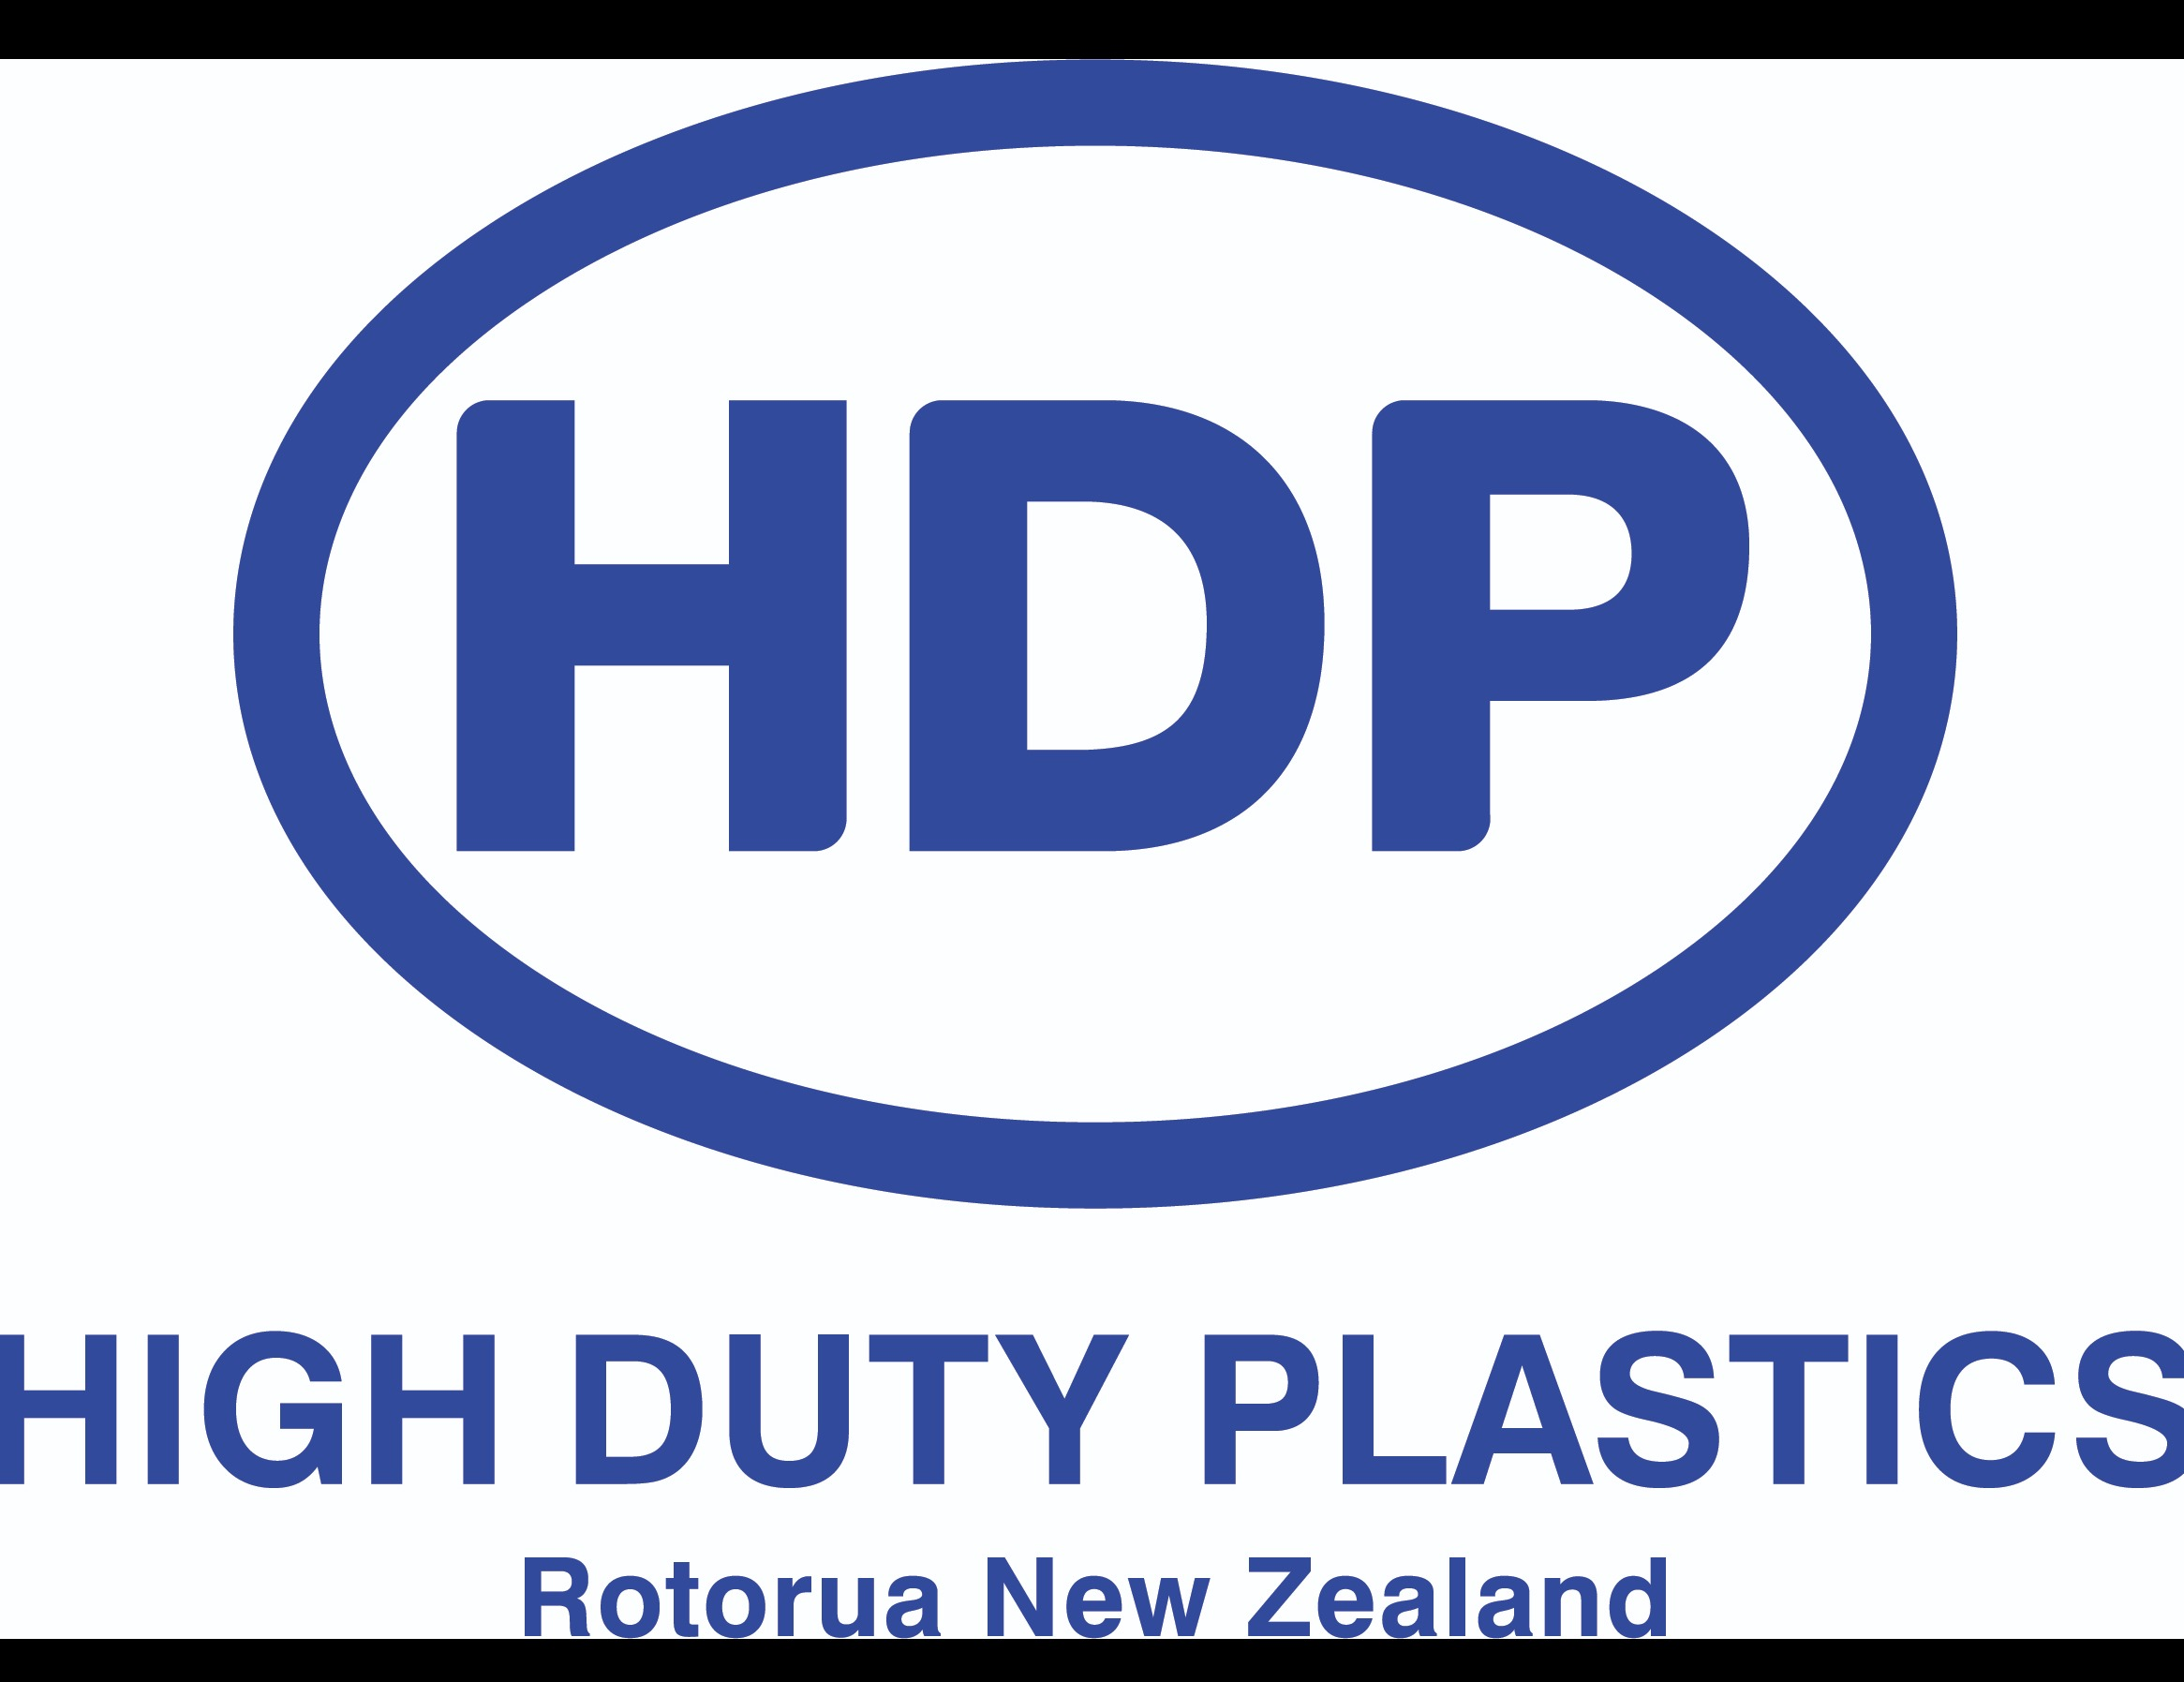 High Duty Plastics Ltd